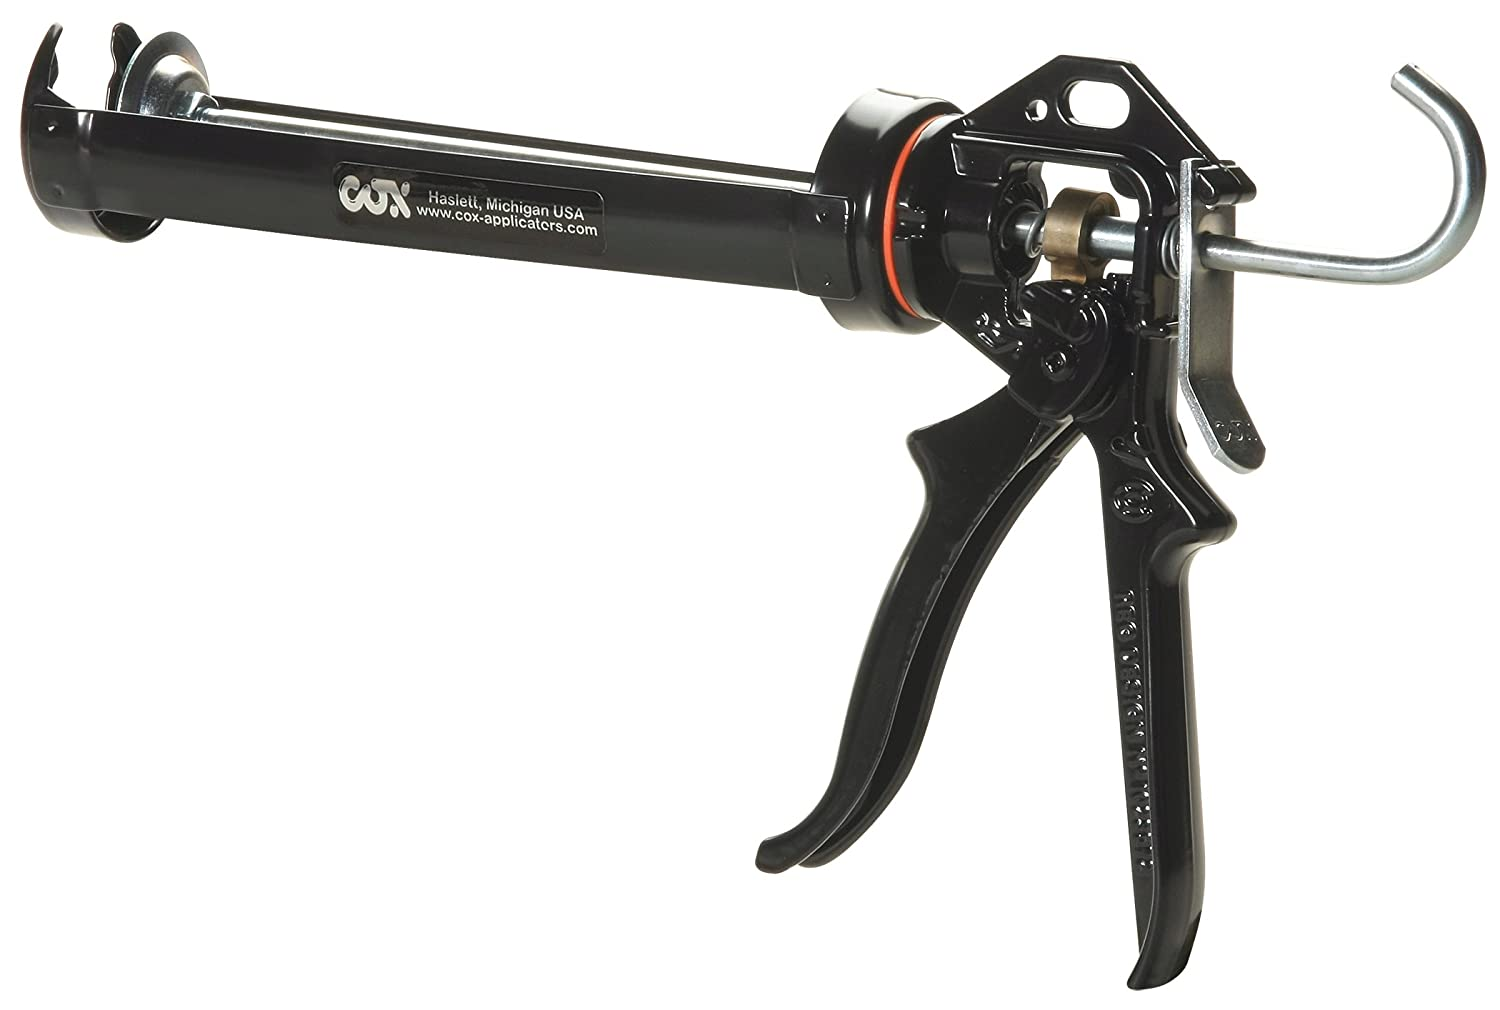 COX 41004-XT Chilton Extra Thrust 10.3-Ounce Cartridge 18:1 Mechanical Advantage Cradle Manual Caulk Gun,  6-Pack Cox North America Inc.